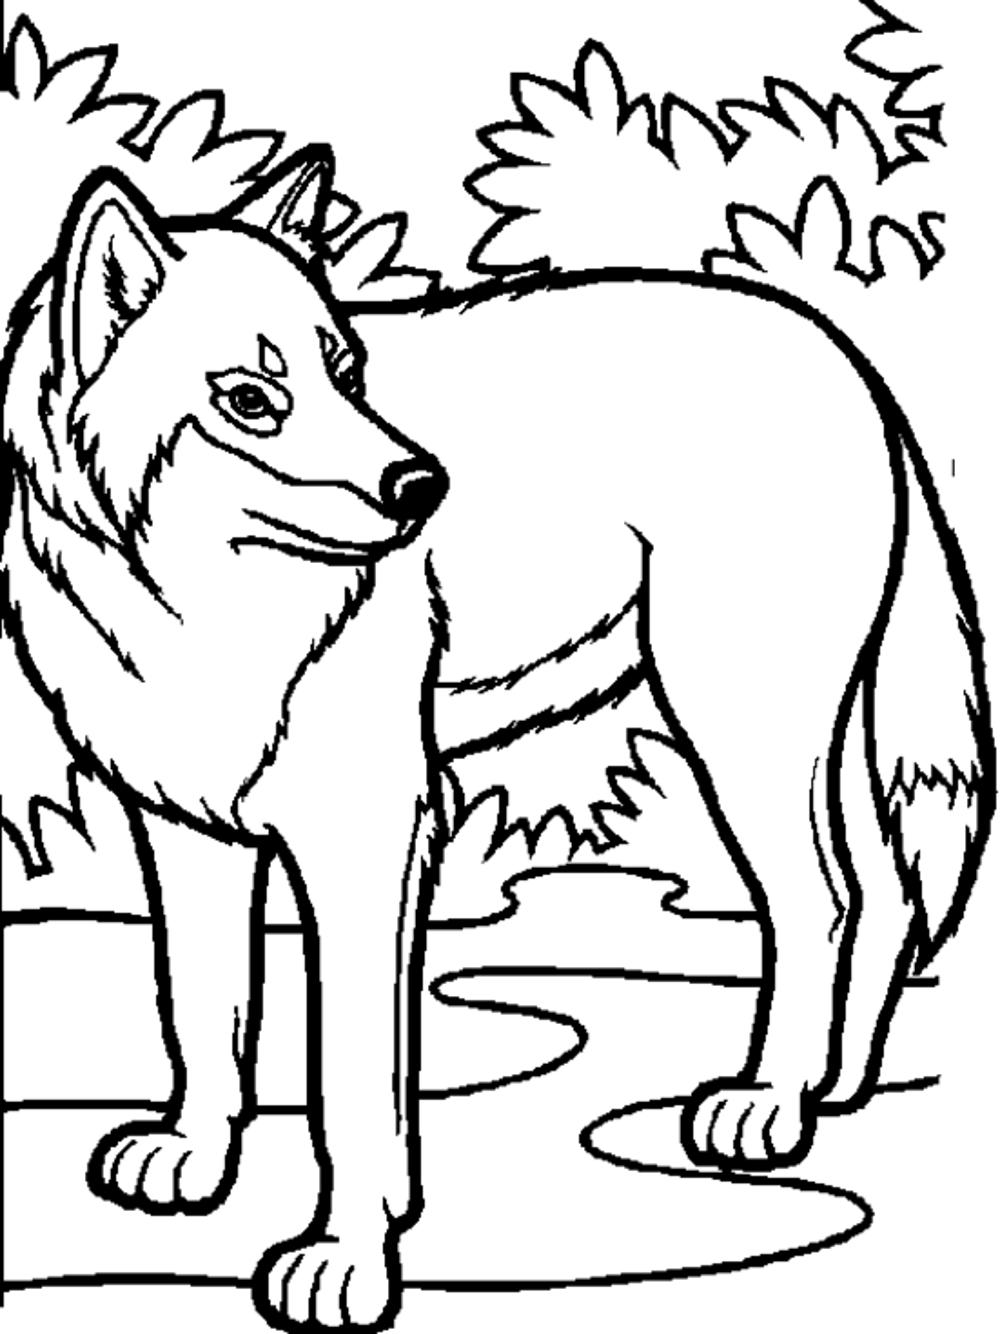 printable wolf coloring pages free printable wolf coloring pages for kids animal place coloring wolf pages printable